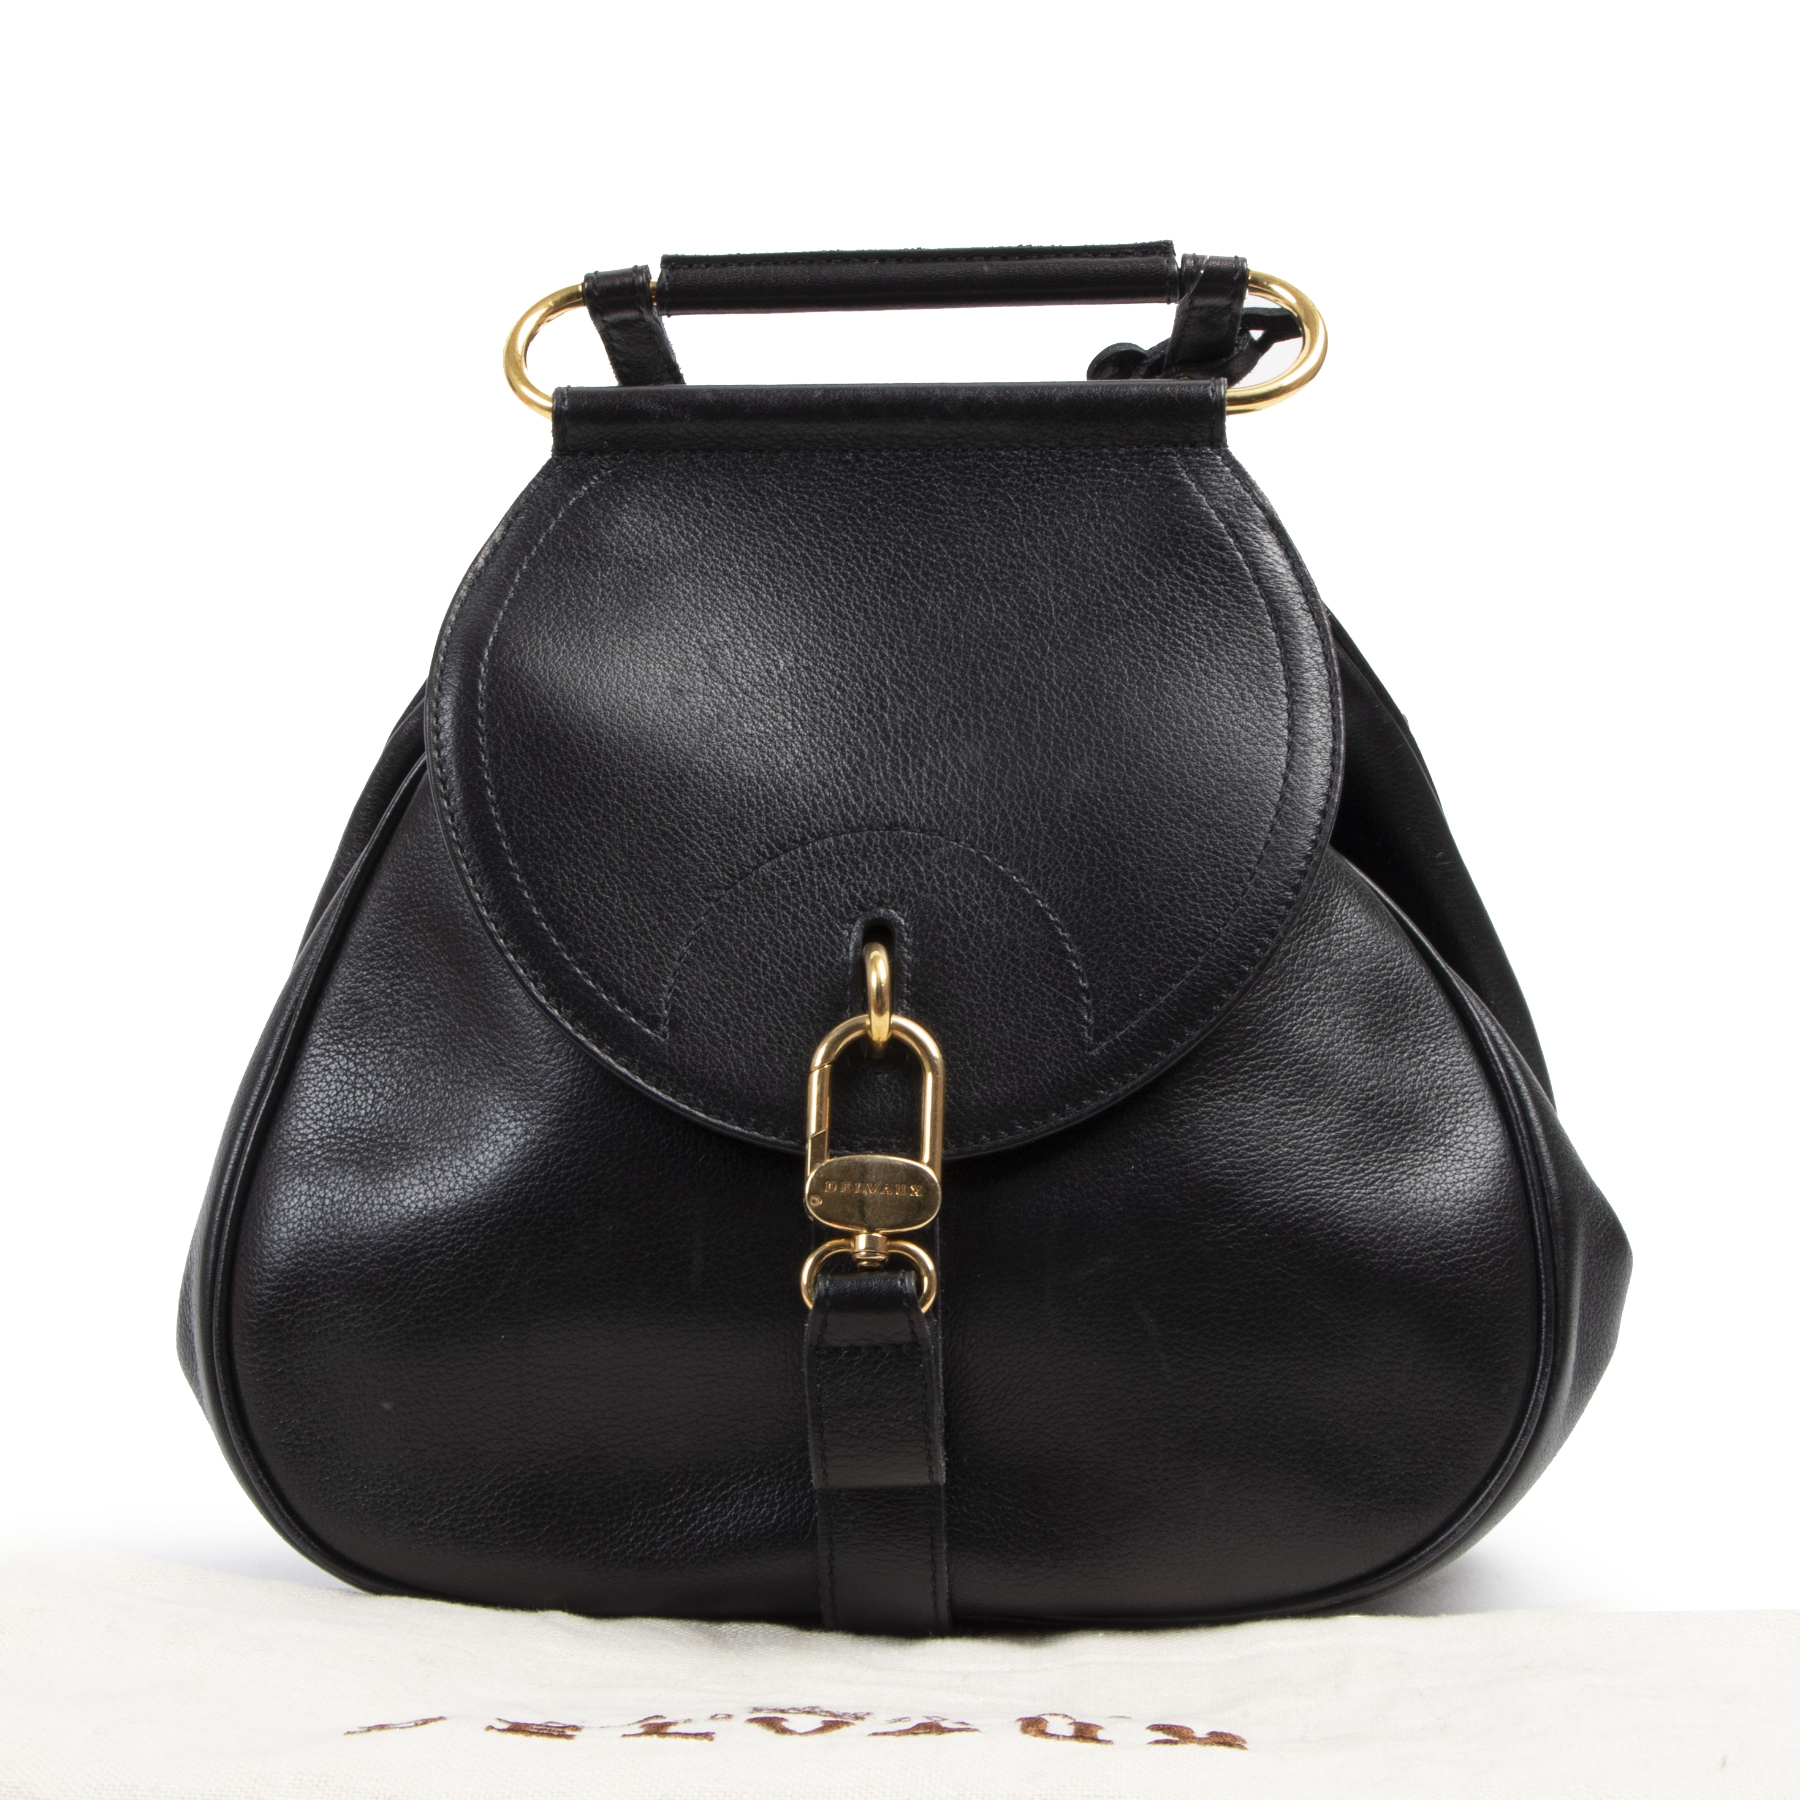 Authentieke tweedehands vintage Delvaux Black Cerceau PM Jumping Bag  koop online webshop LabelLOV